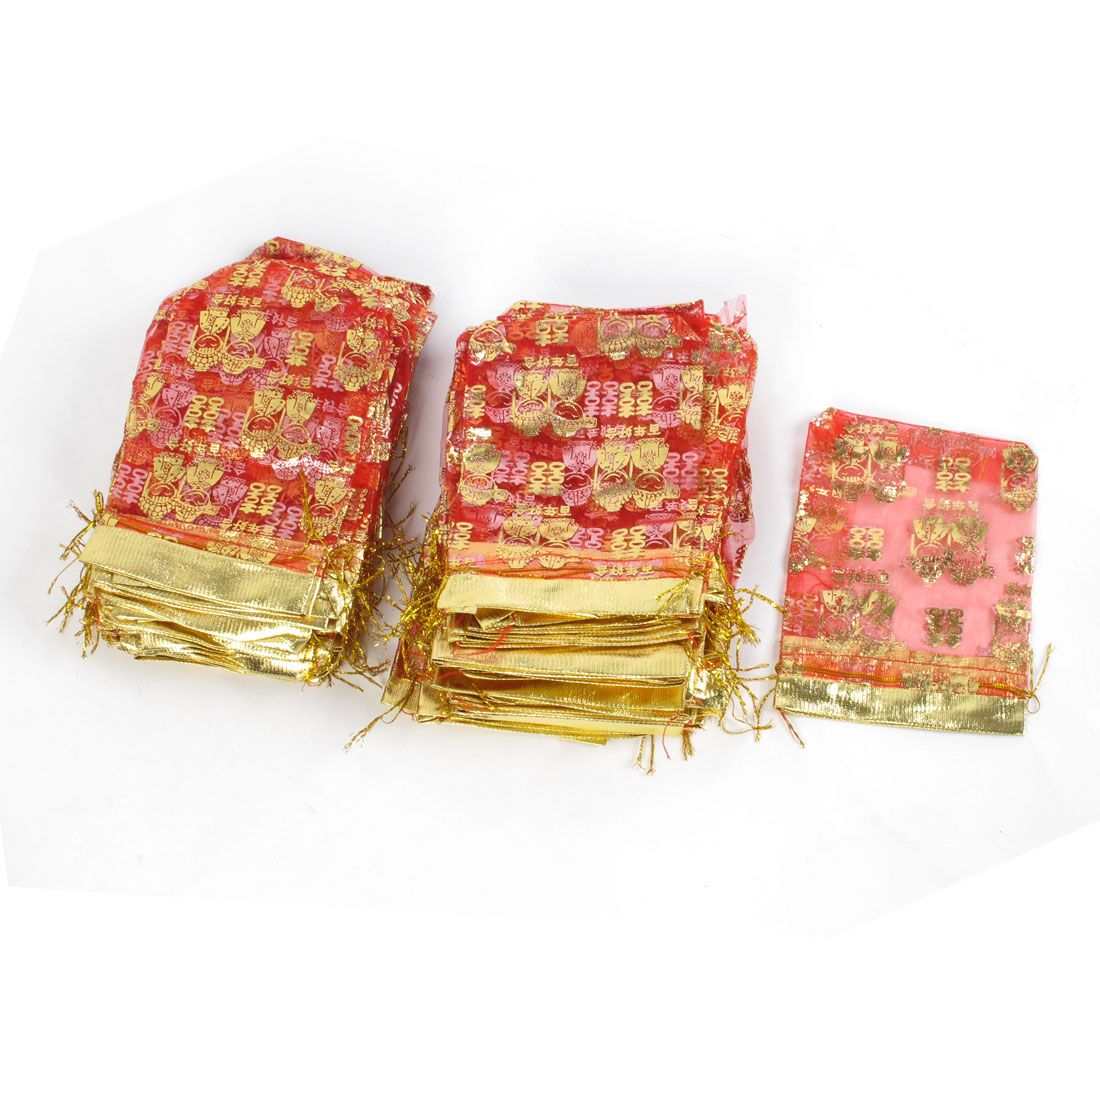 100 Pcs Gold Tone Double Happiness Printed Red Organza Gift Bags